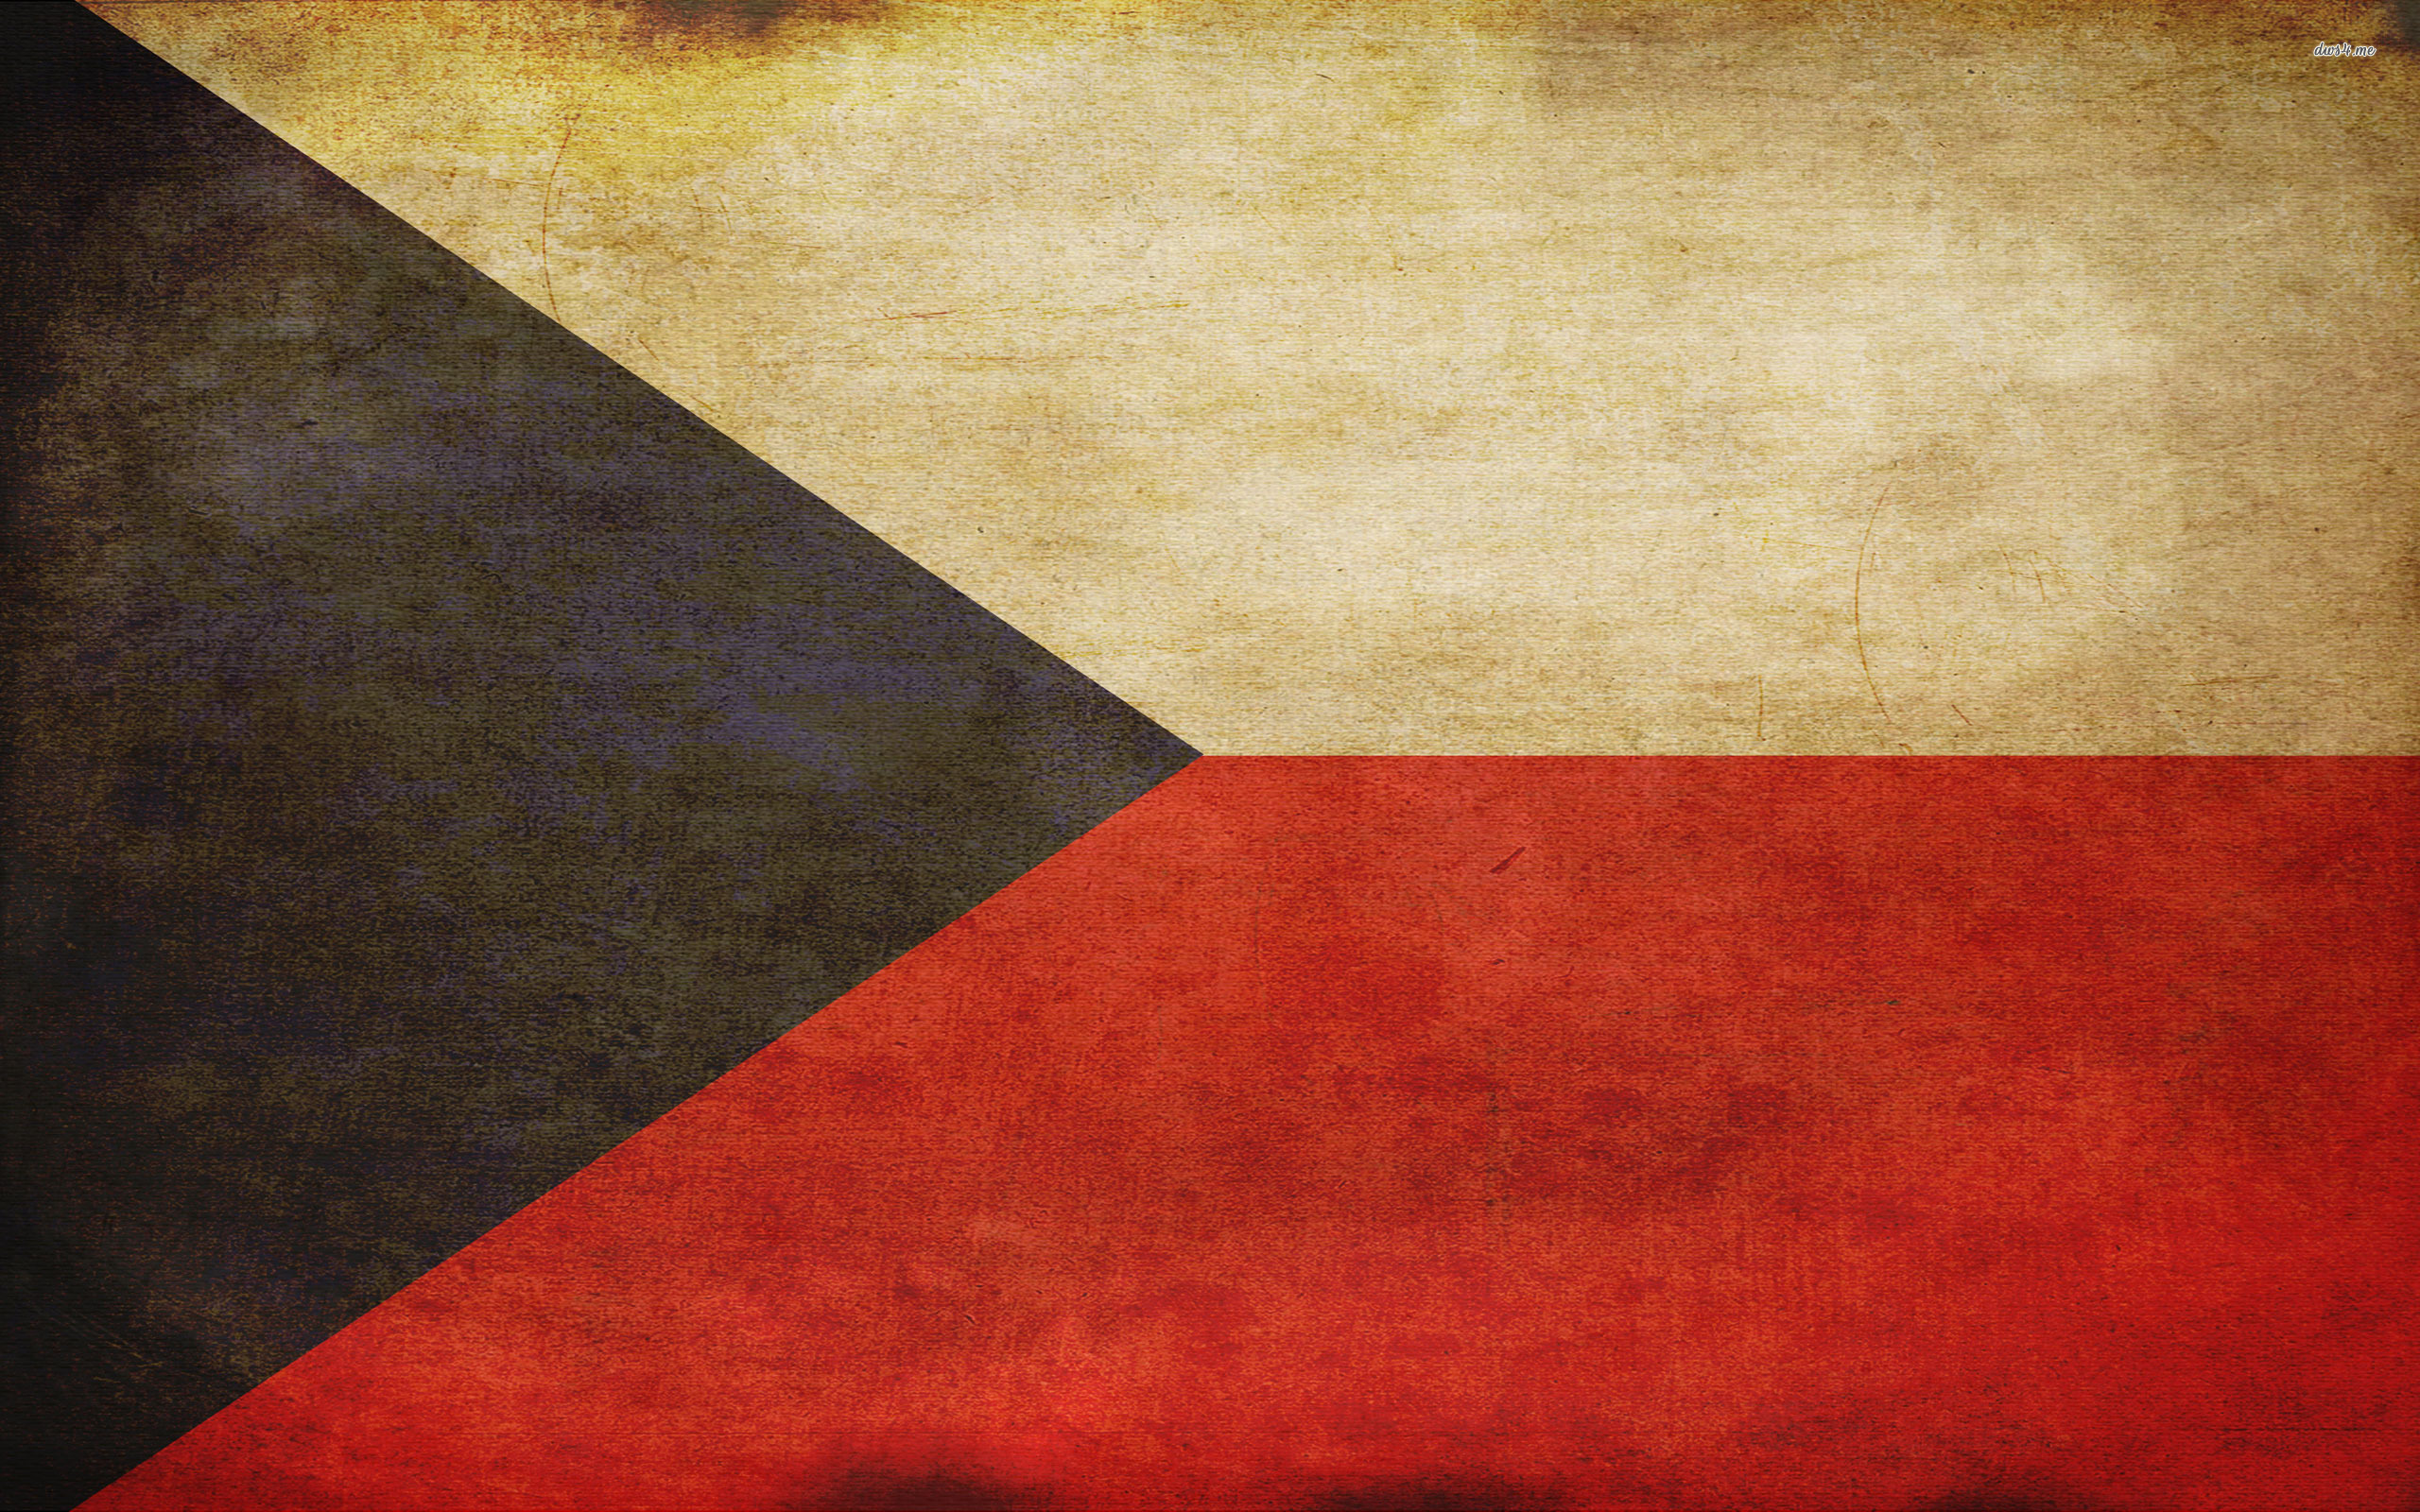 Czech Republic flag wallpaper   Digital Art wallpapers   9233 2560x1600